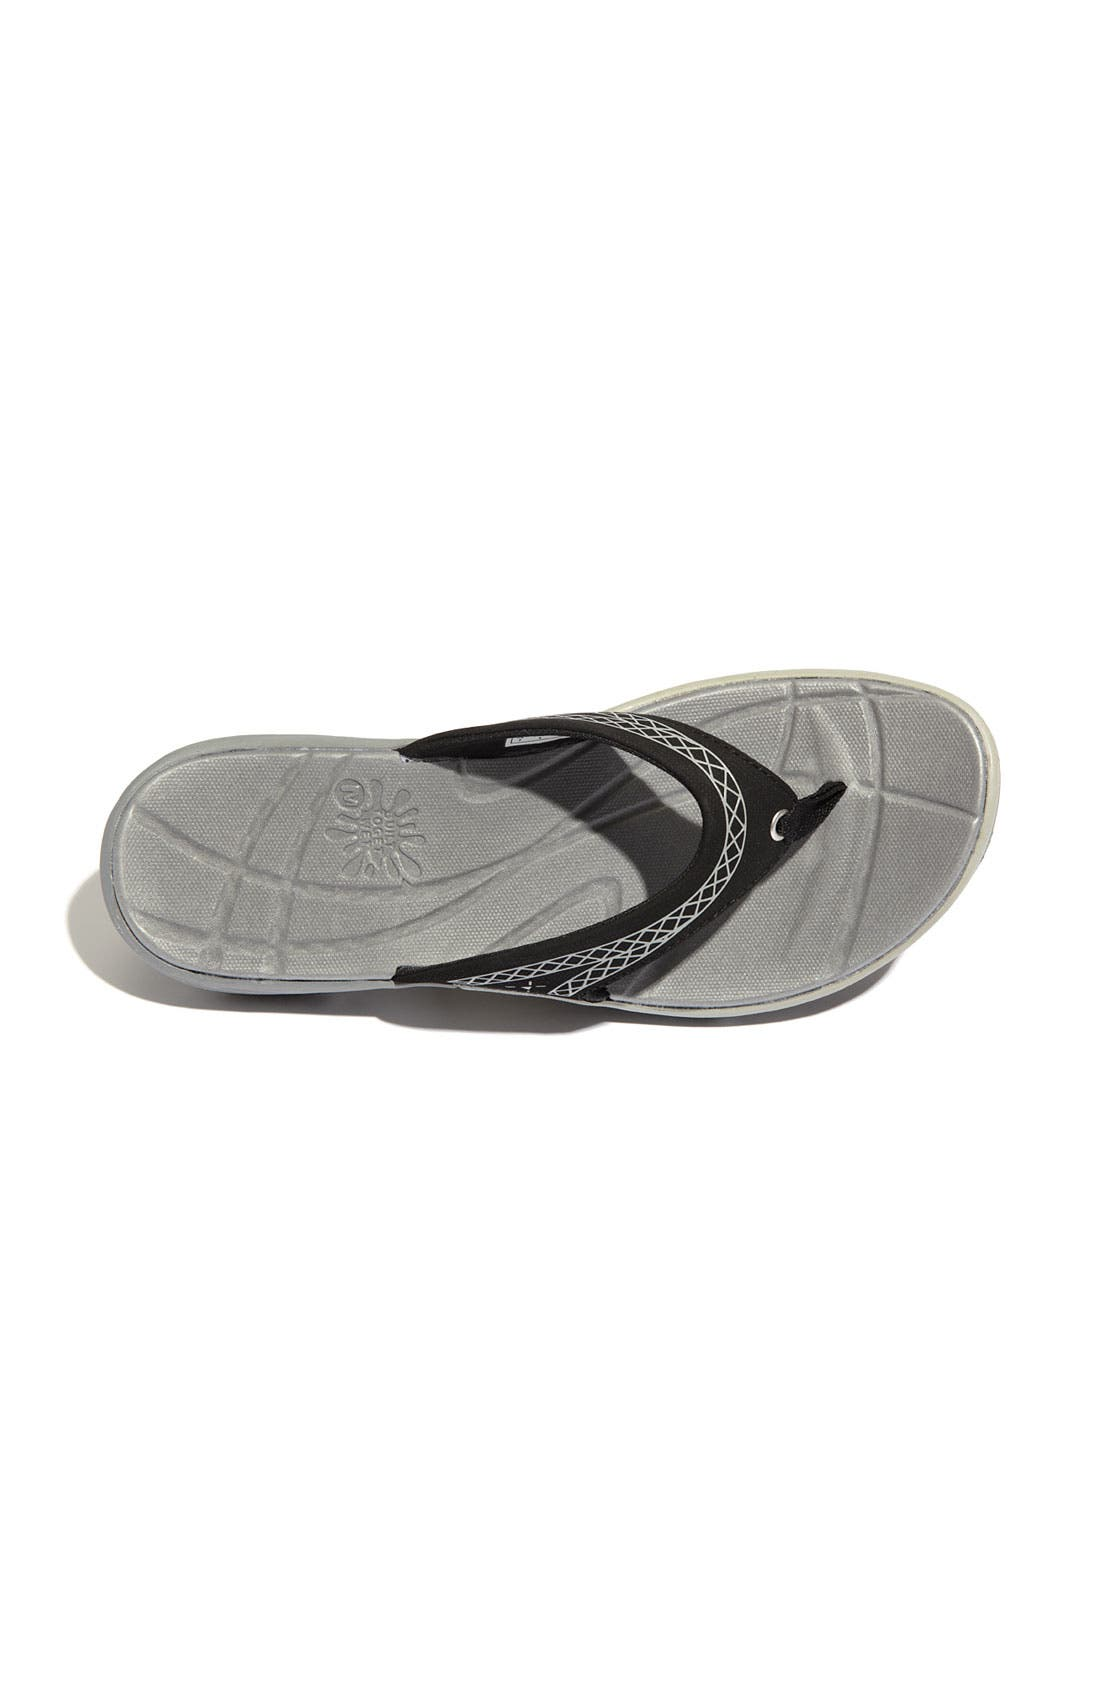 Alternate Image 3  - Merrell 'Avian' Sandal